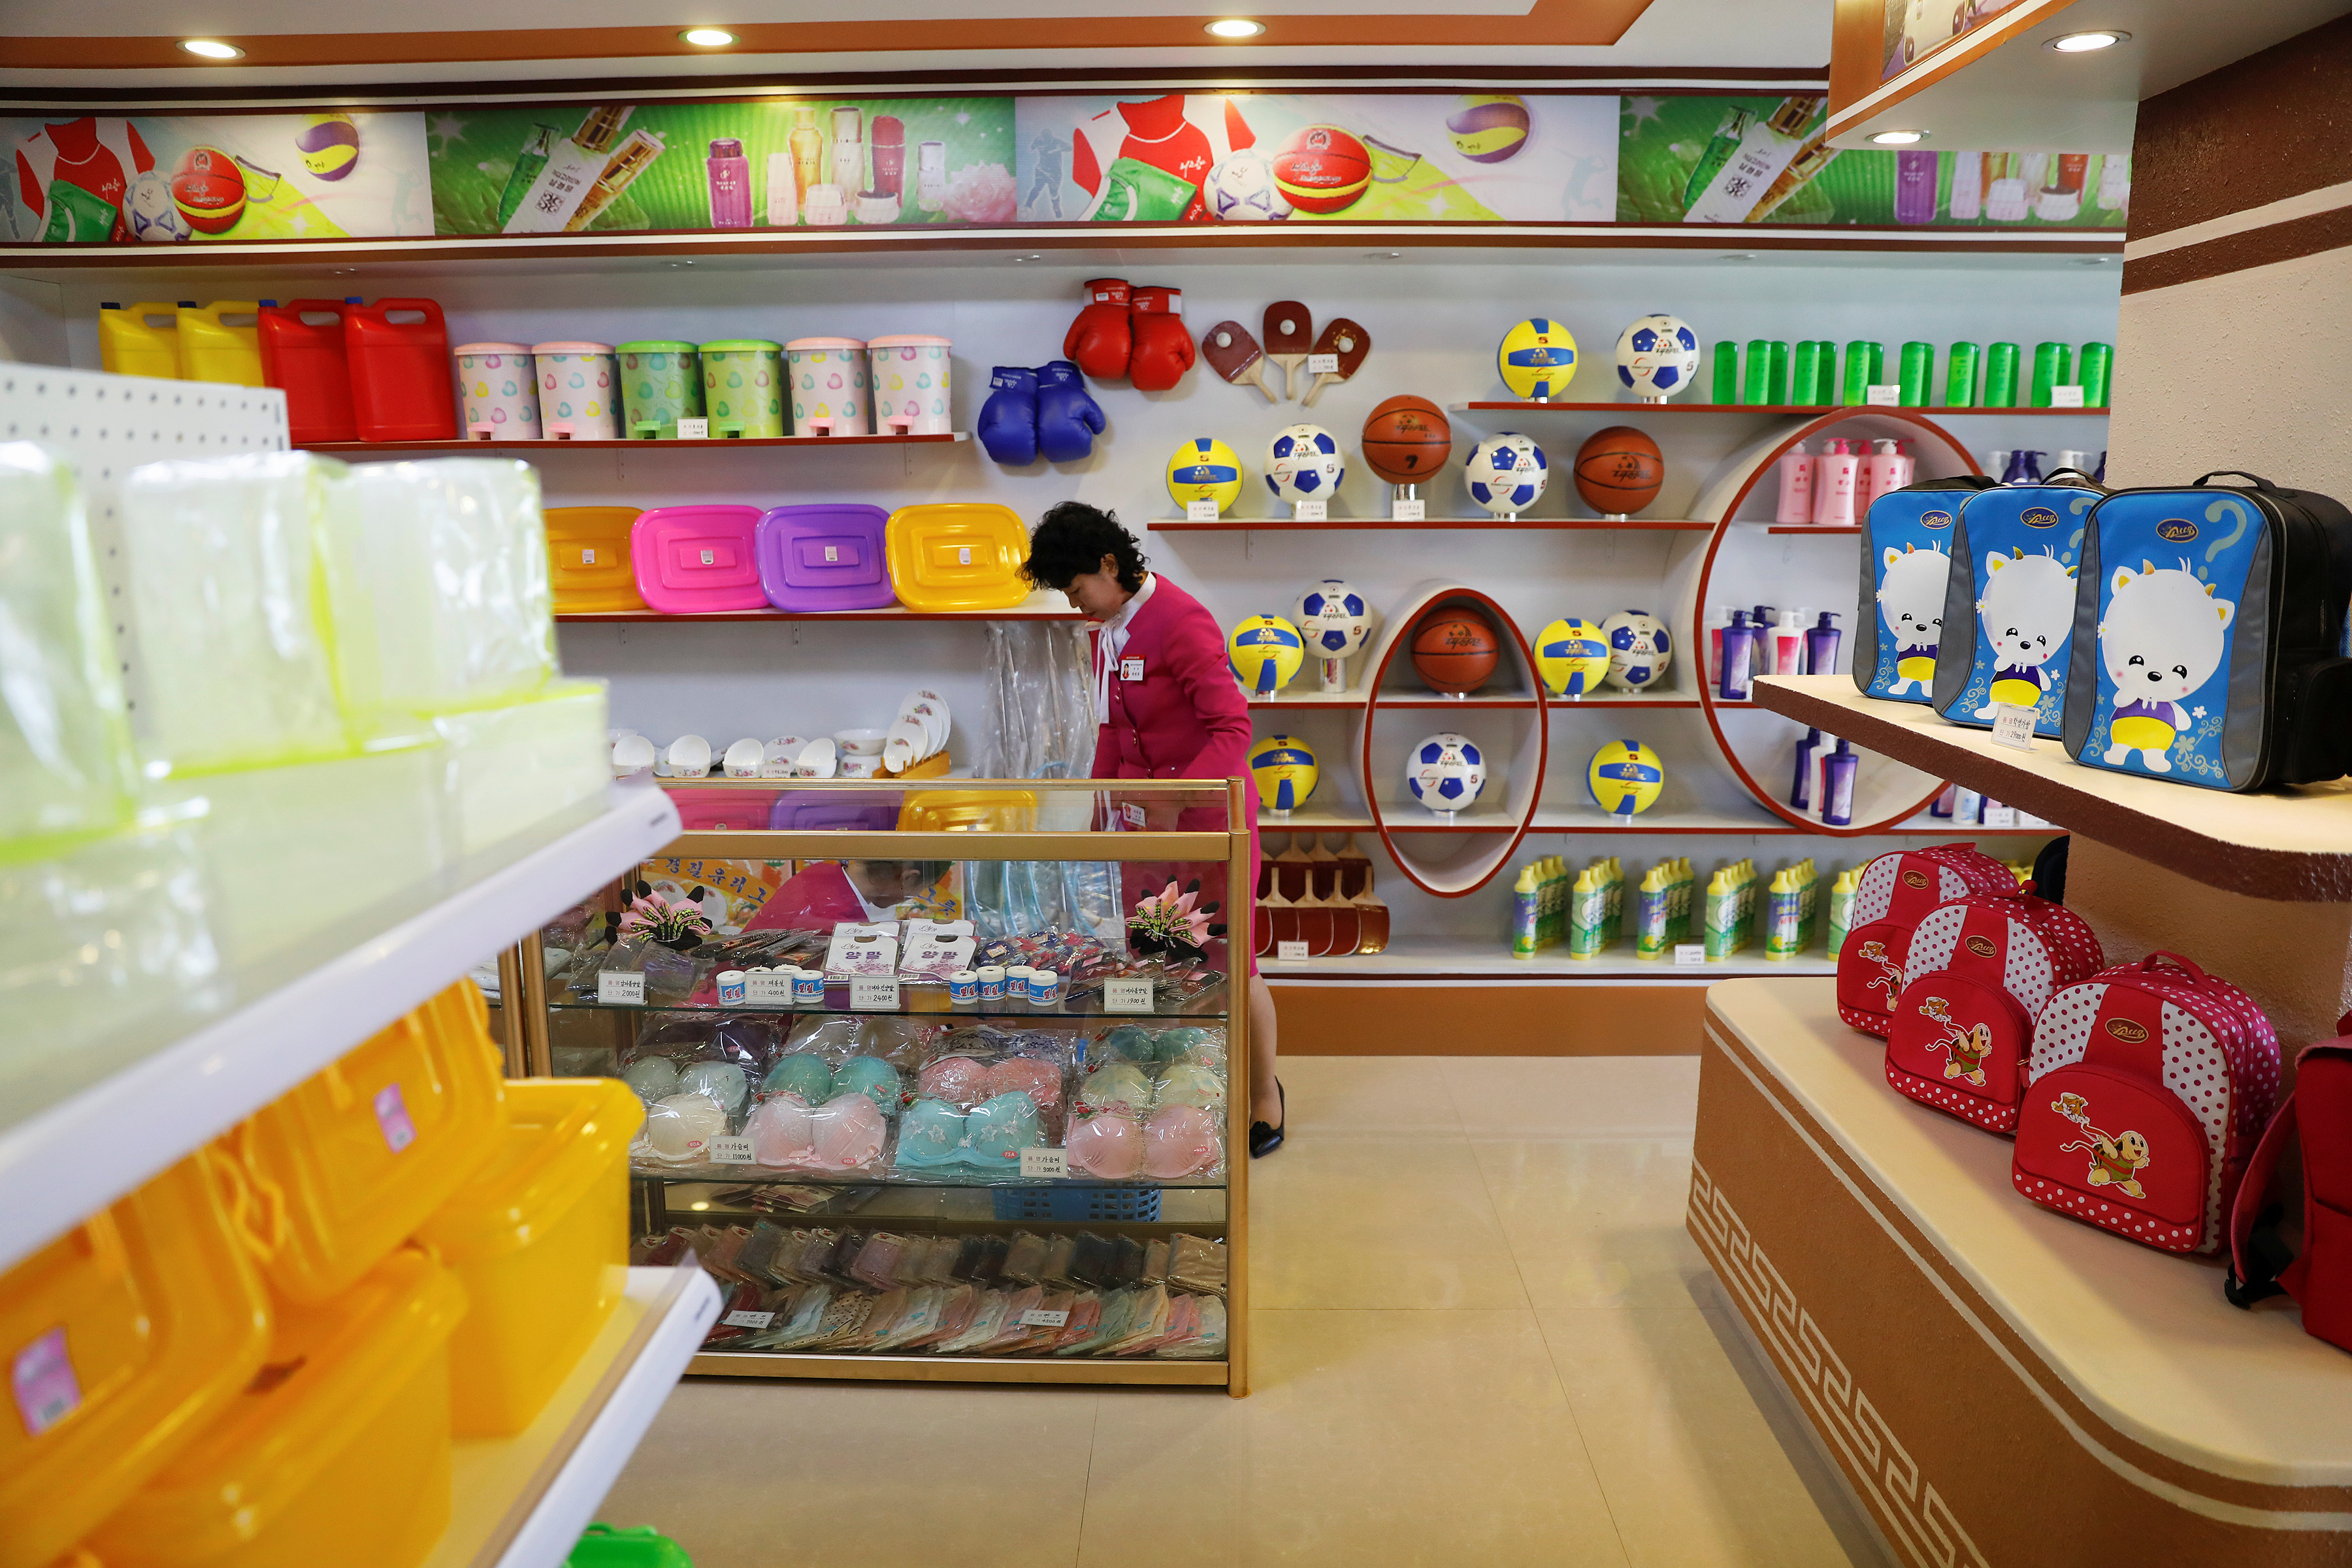 A vendor is pictured in a shop in a newly constructed residential complex after its opening ceremony in Ryomyong street in Pyongyang, North Korea April 13, 2017. REUTERS/Damir Sagolj